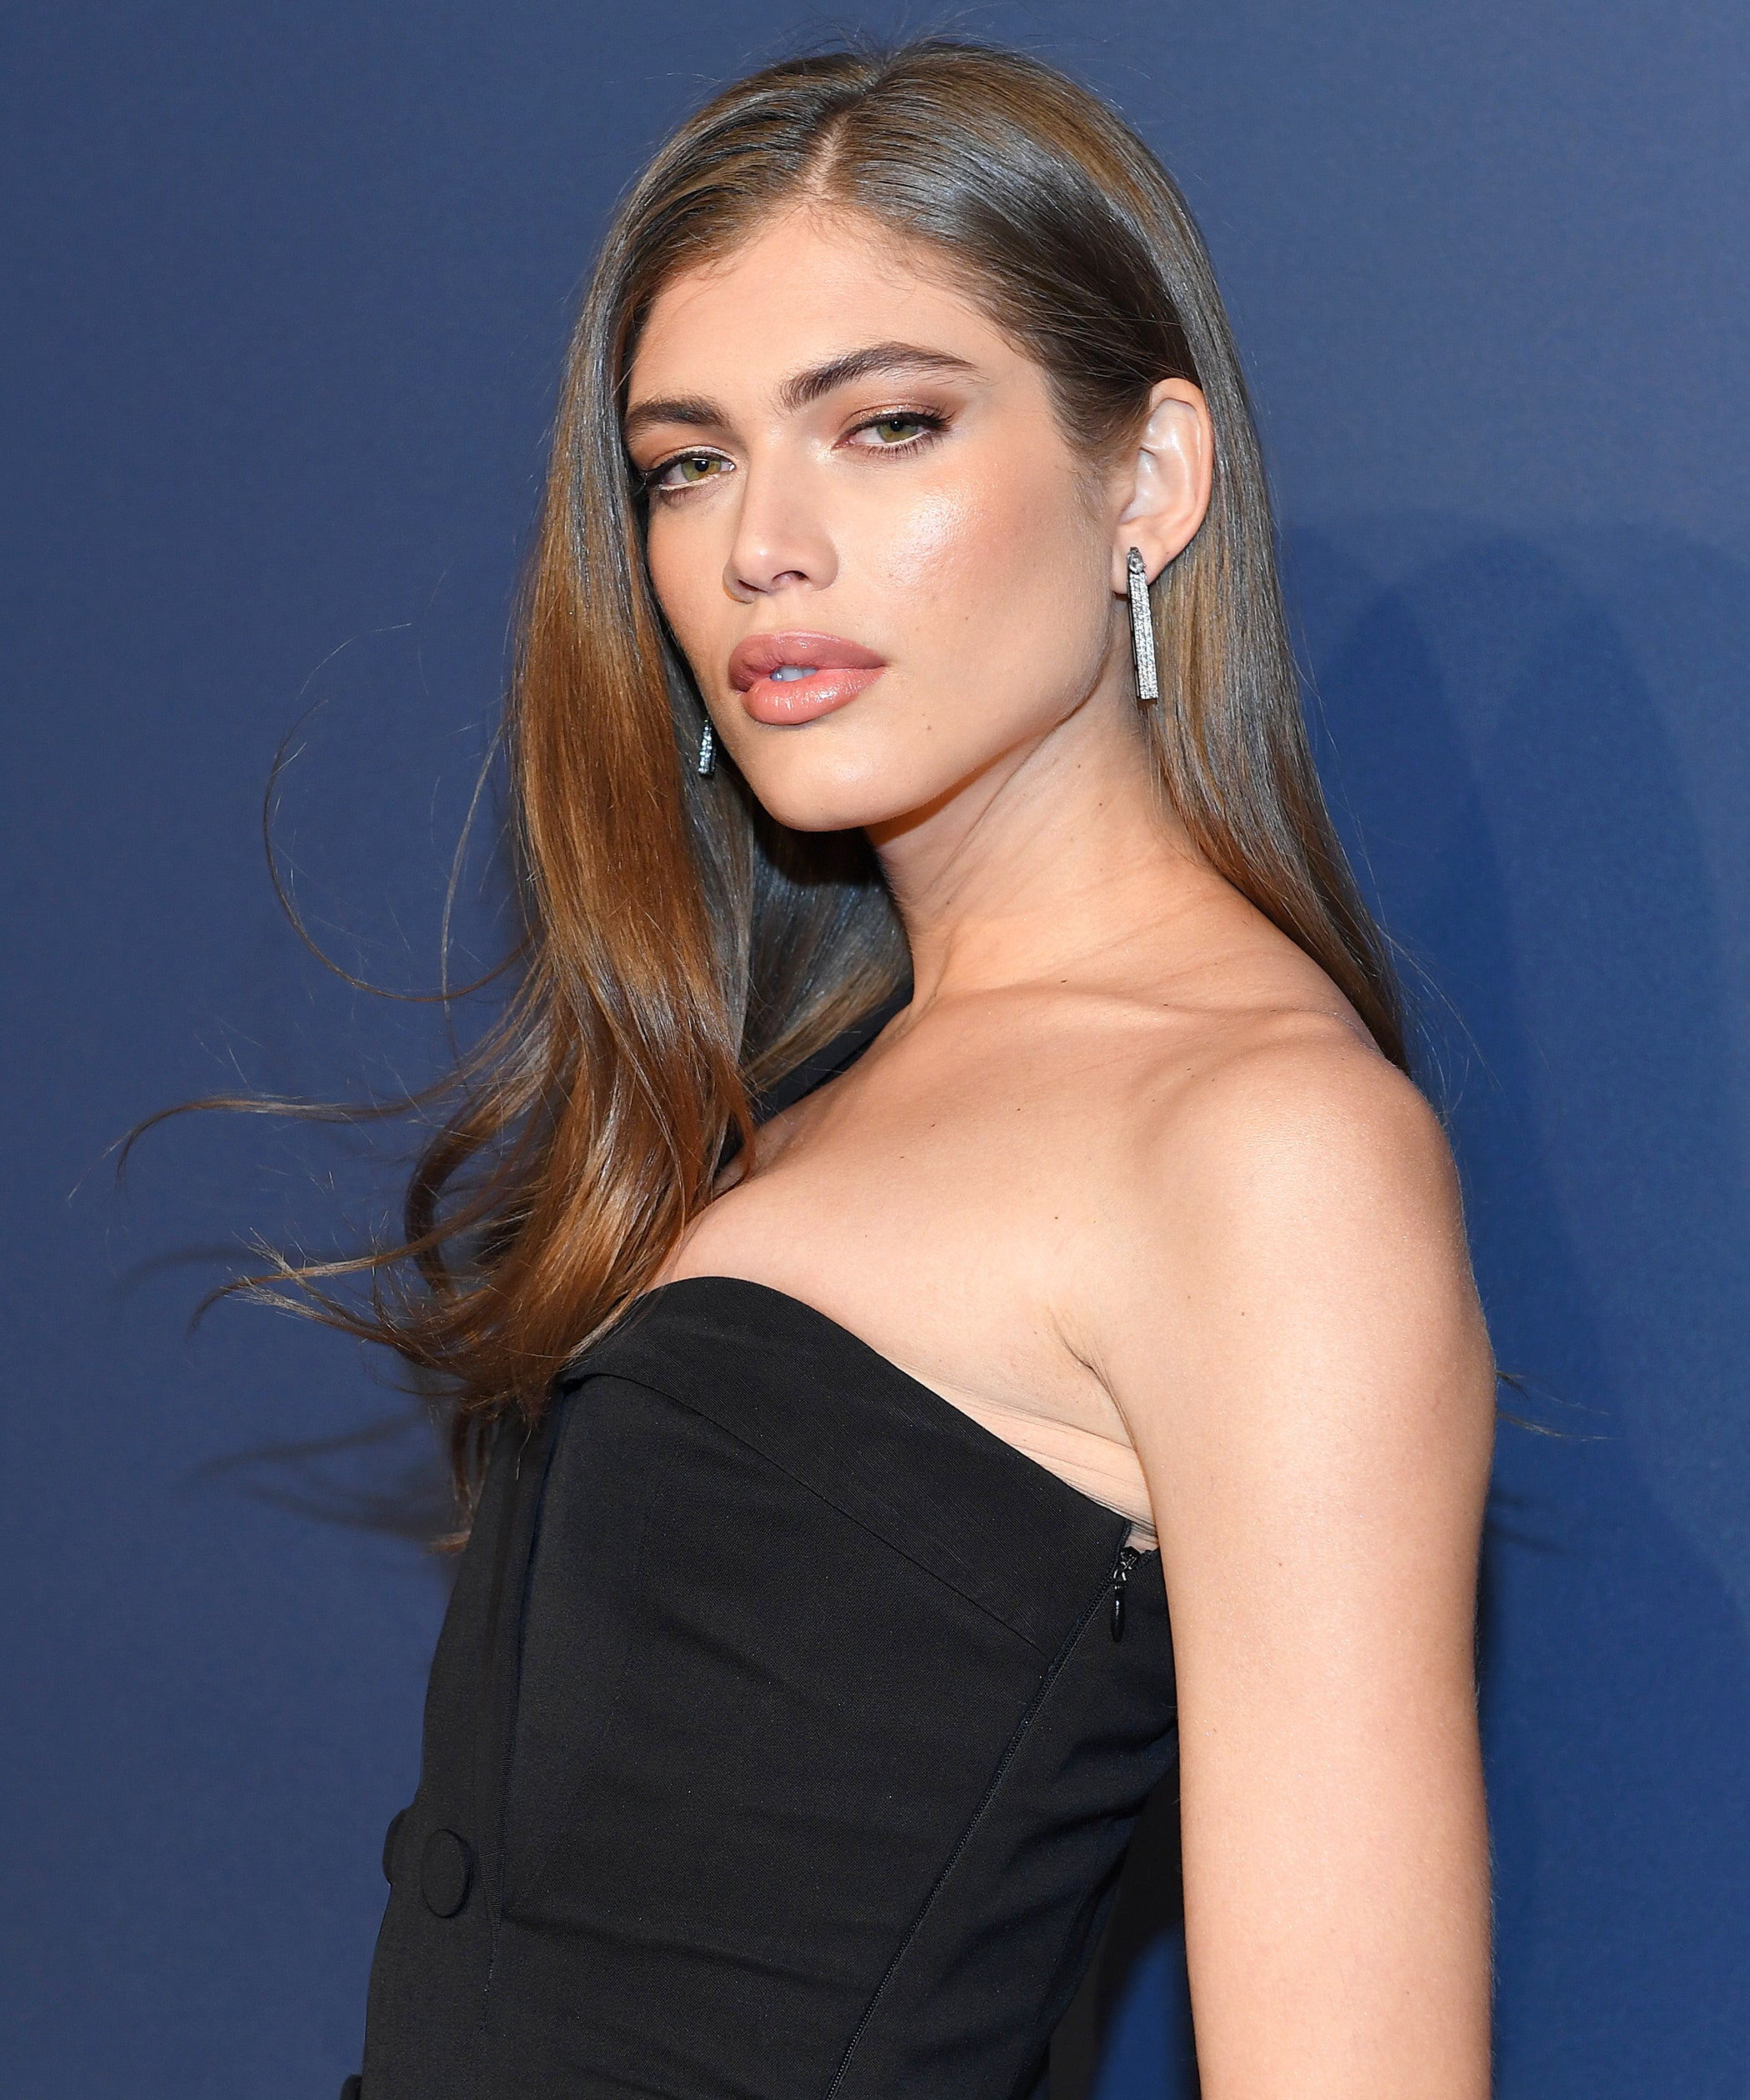 Sports Illustrated First Trans Model Valentina Sampaio